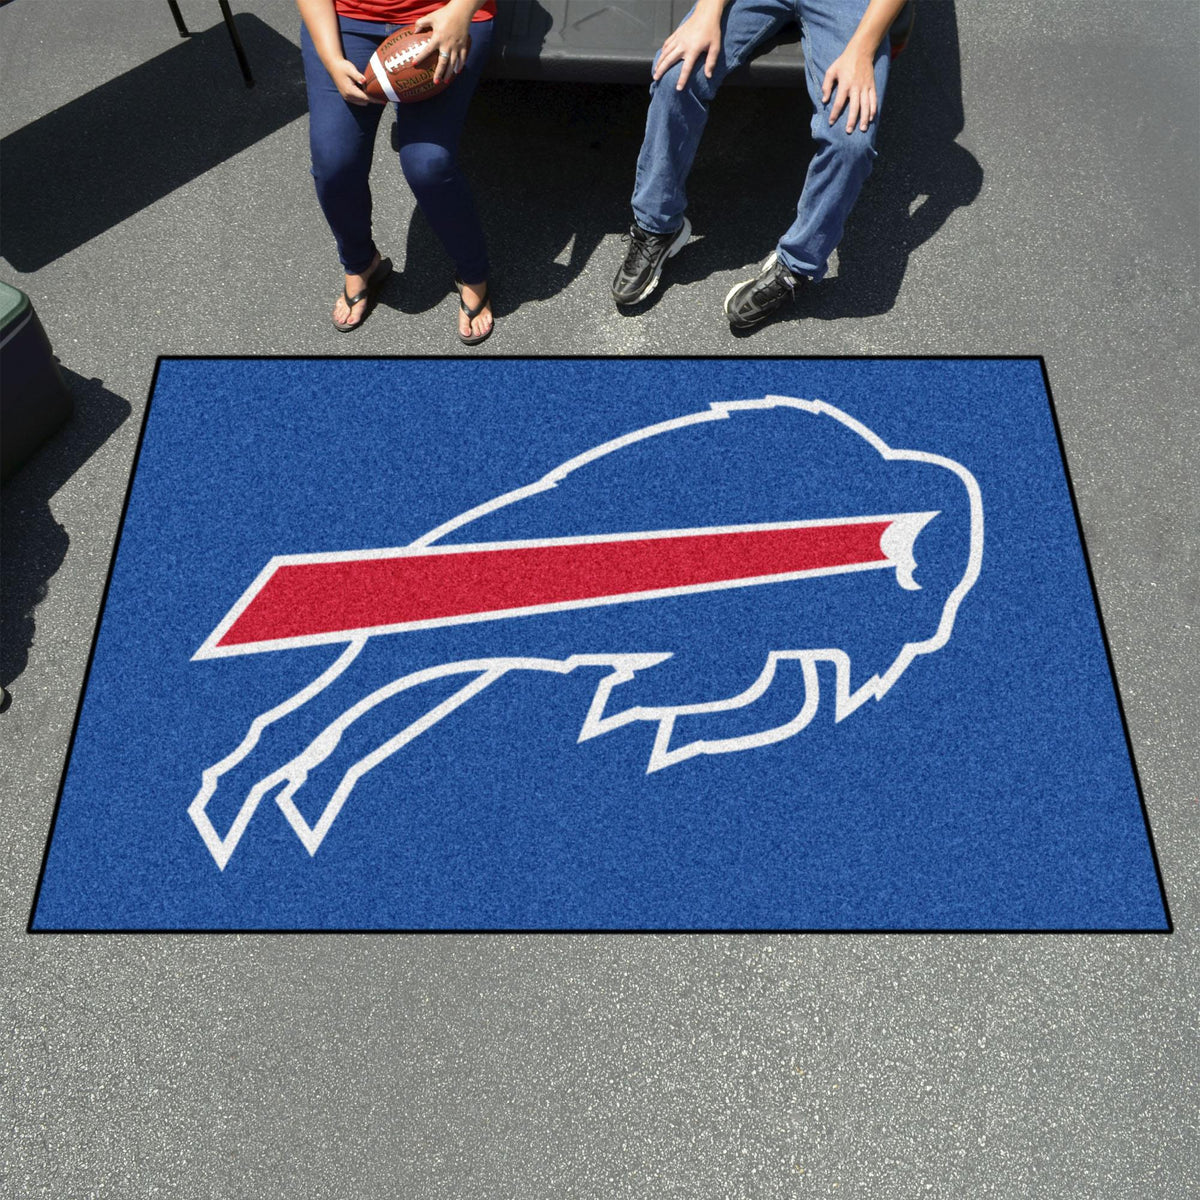 "NFL - Ulti-Mat, 59.5"" x 94.5"" NFL Mats, Rectangular Mats, Ulti-Mat, NFL, Home Fan Mats Buffalo Bills 2"